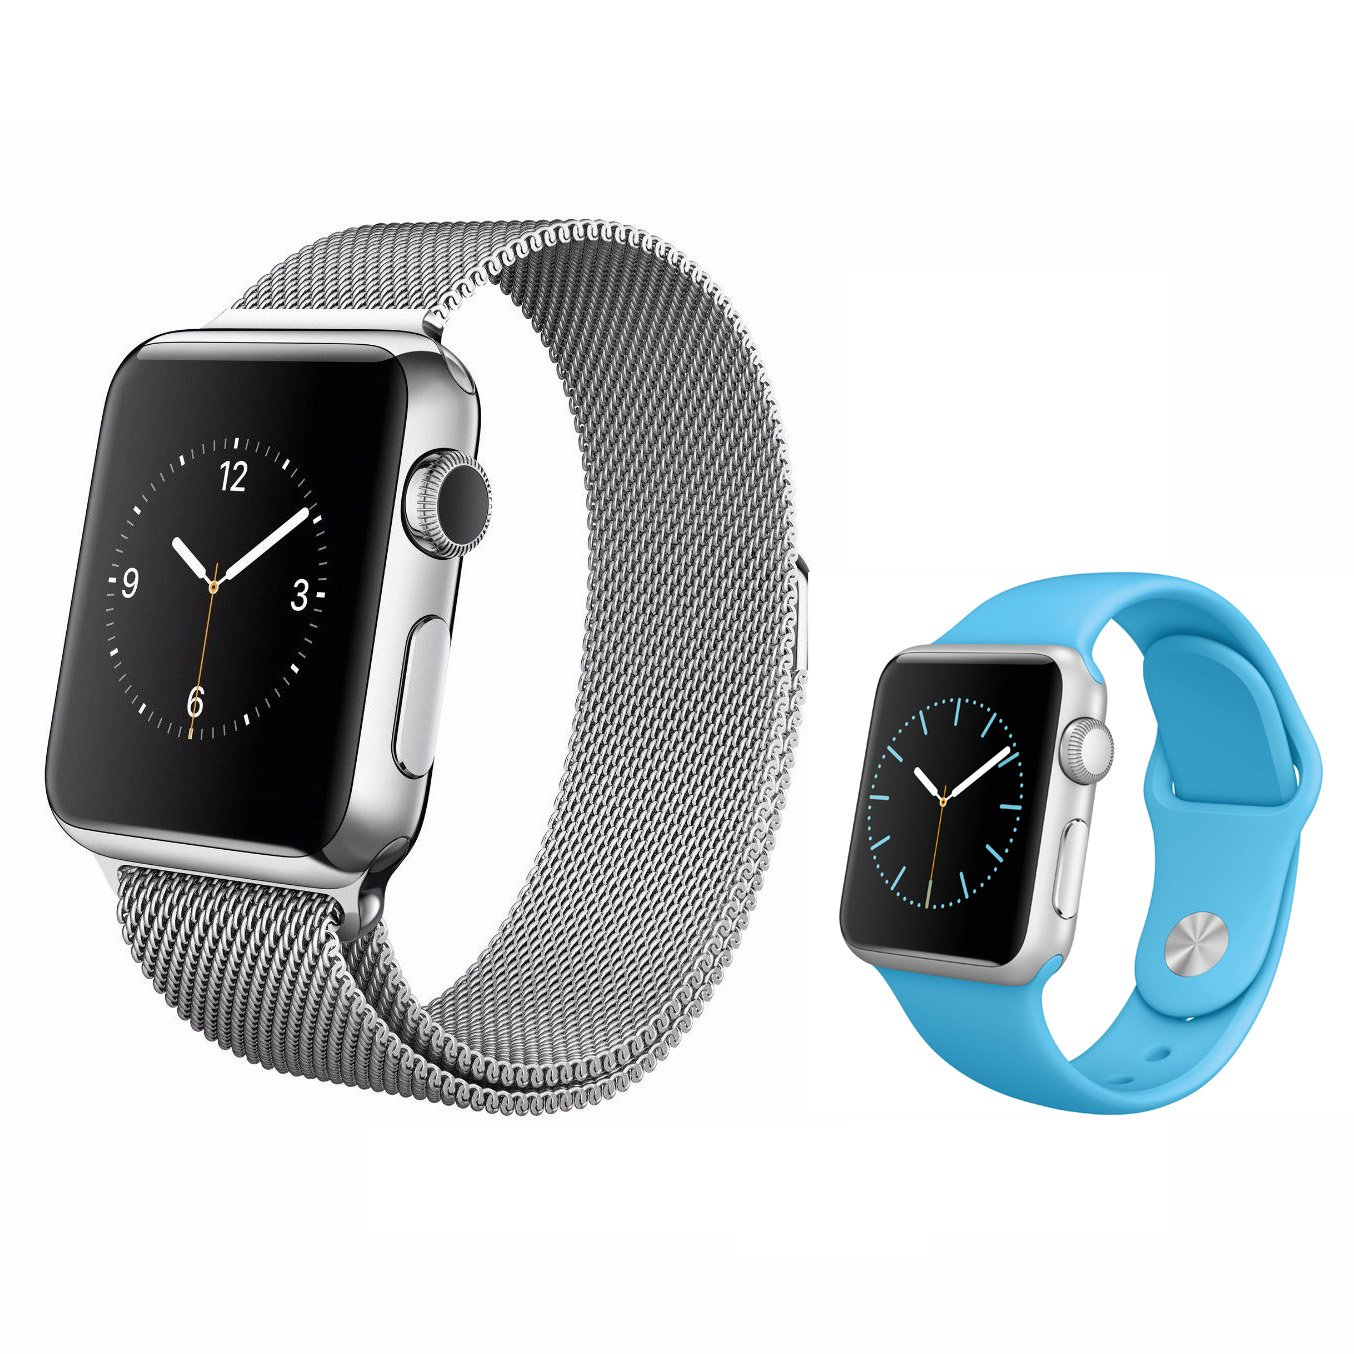 ELECAND Milanese Loop Band for Apple Watch 42mm,Stainless Steel Bands for Iwatch Series 1, 2, 3 + Bonus Band (Pack of 5)